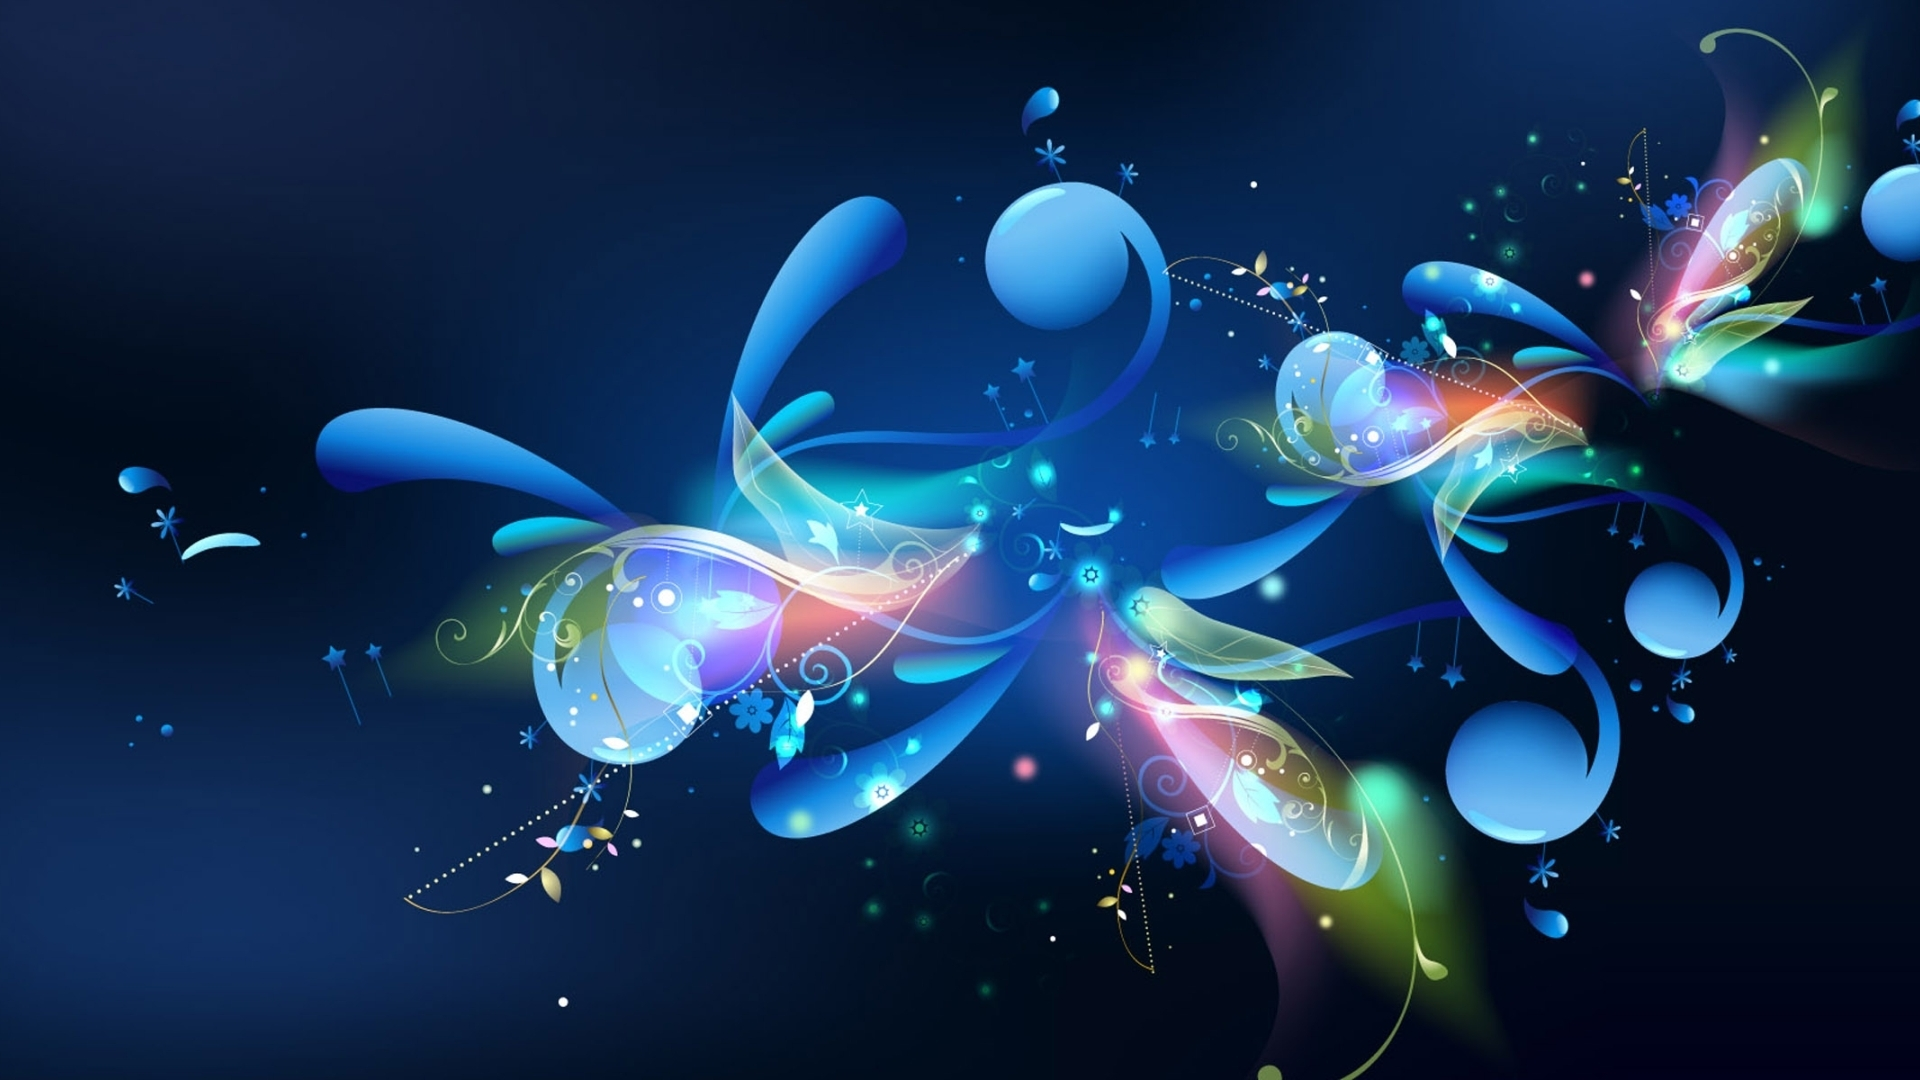 10 new most popular computer backgrounds full hd 1080p for pc desktop